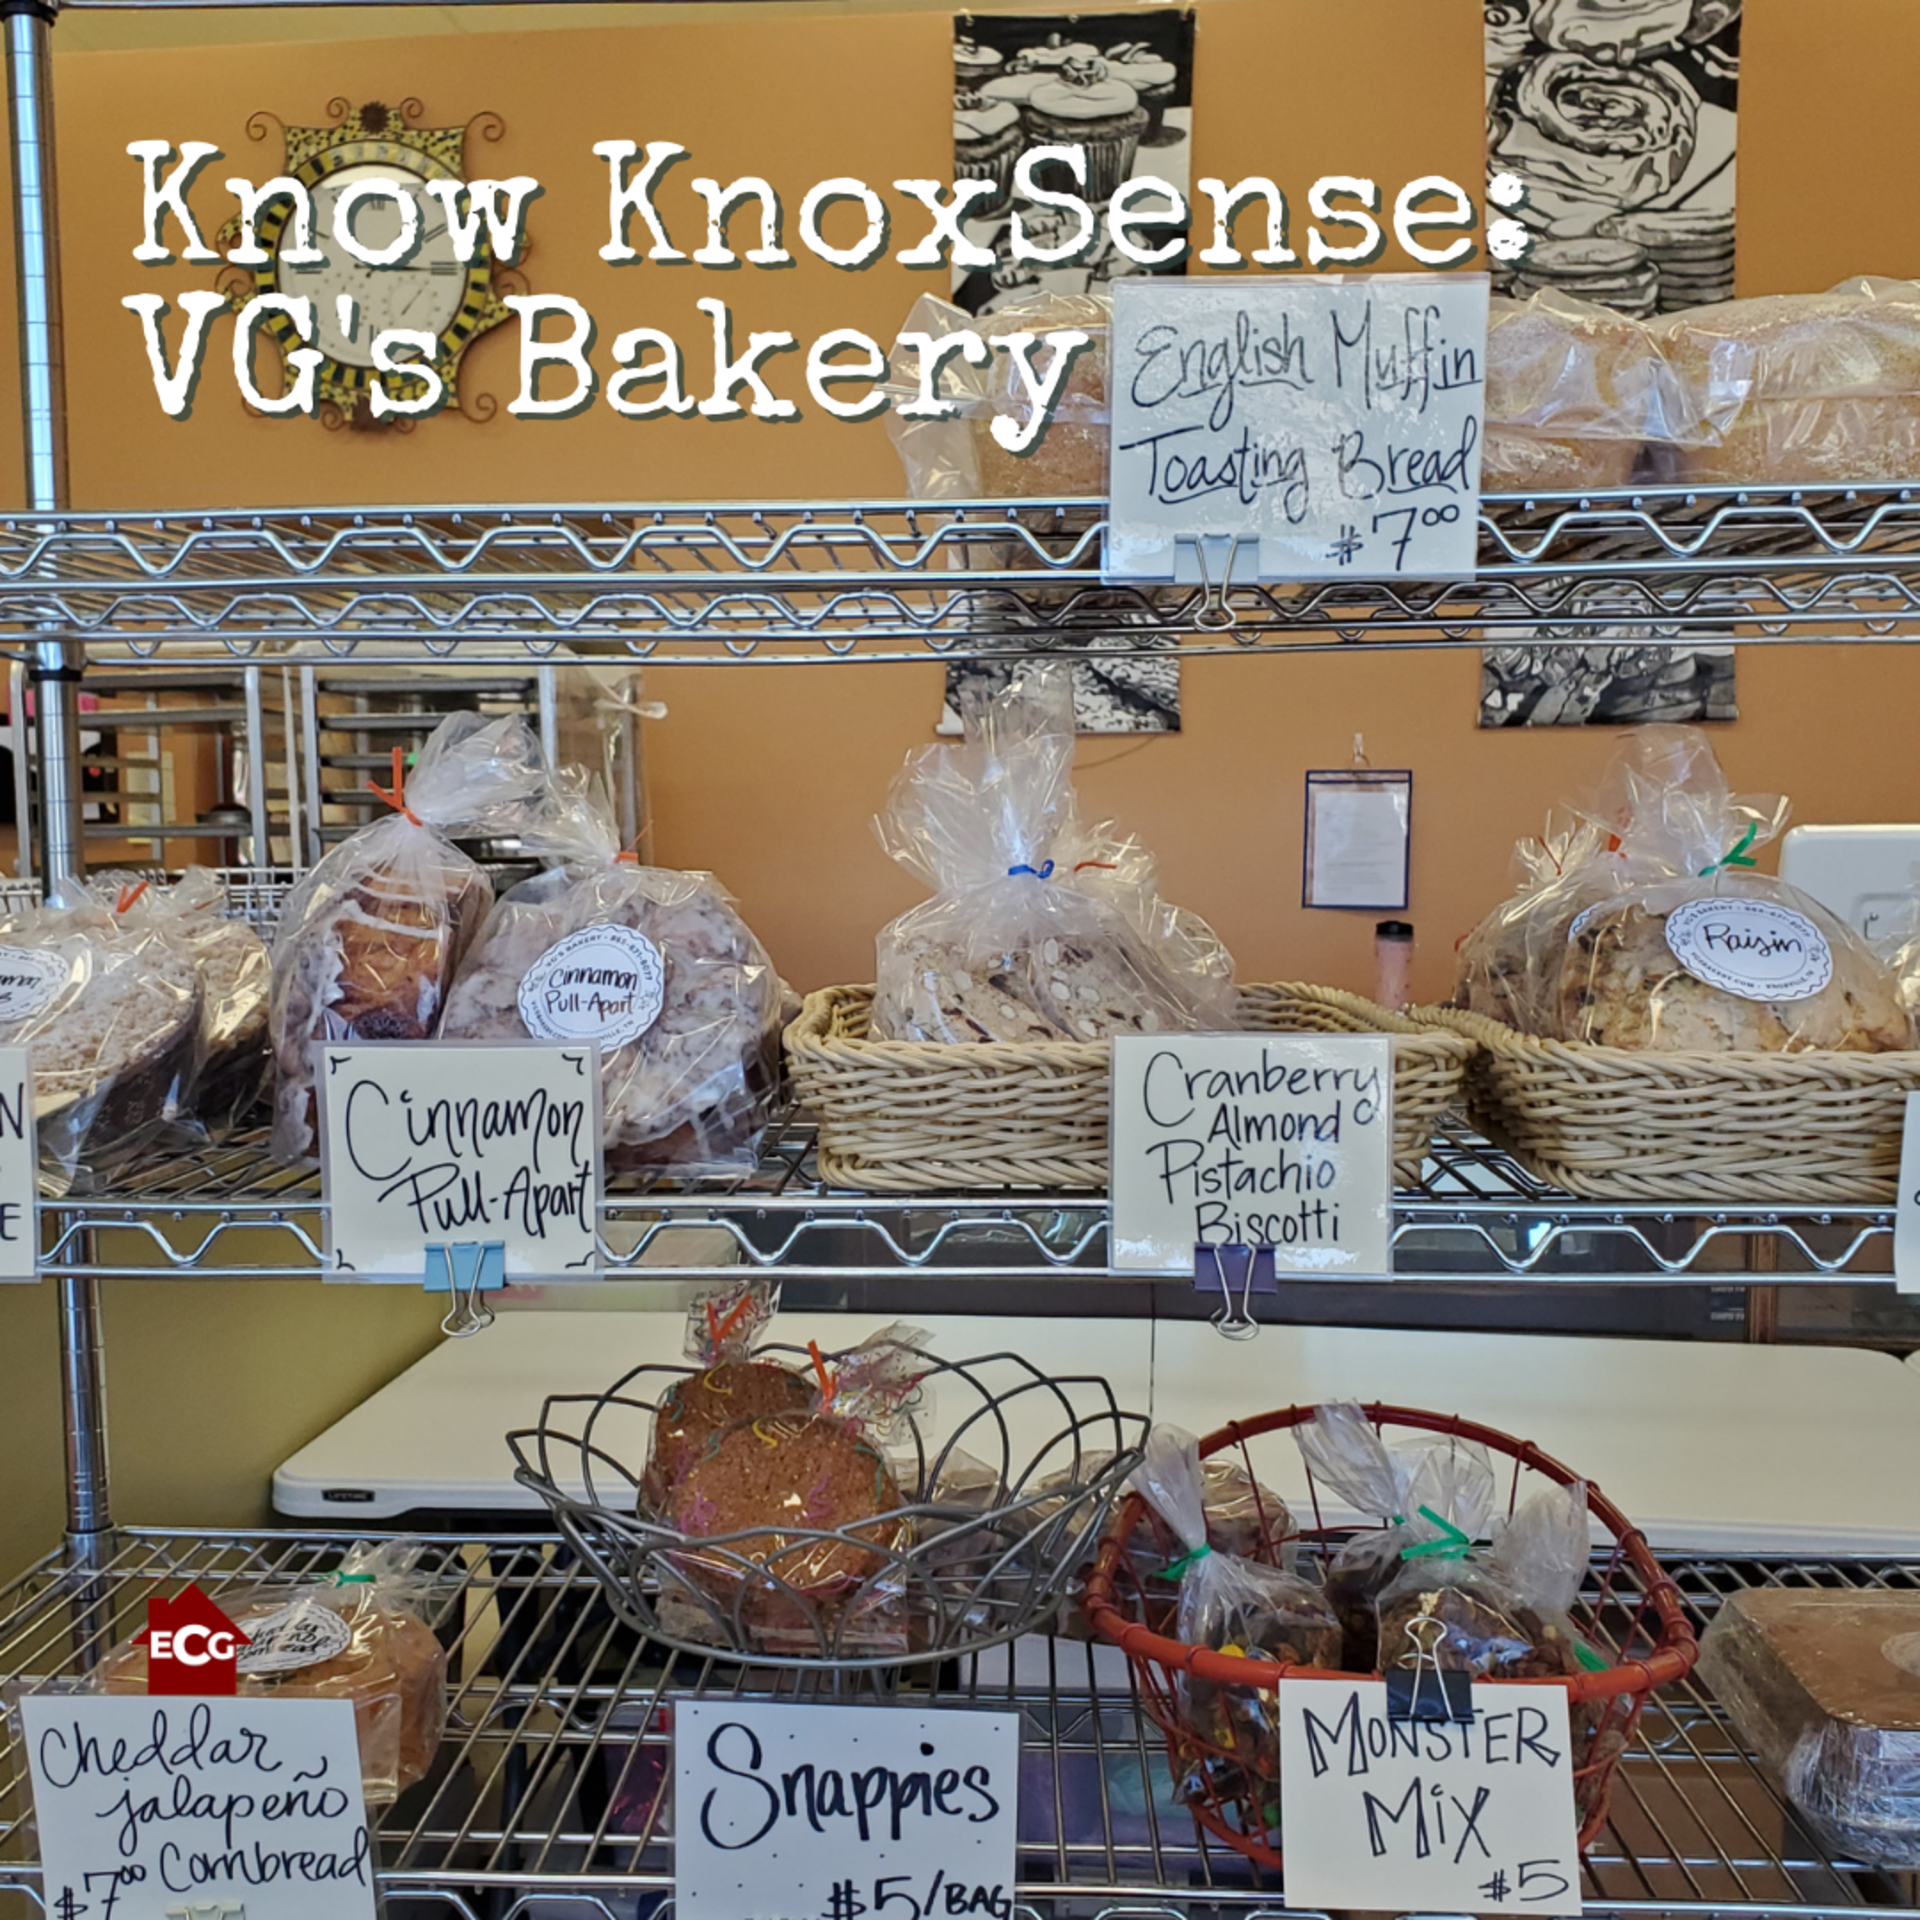 Know Knoxsense: VG's Bakery